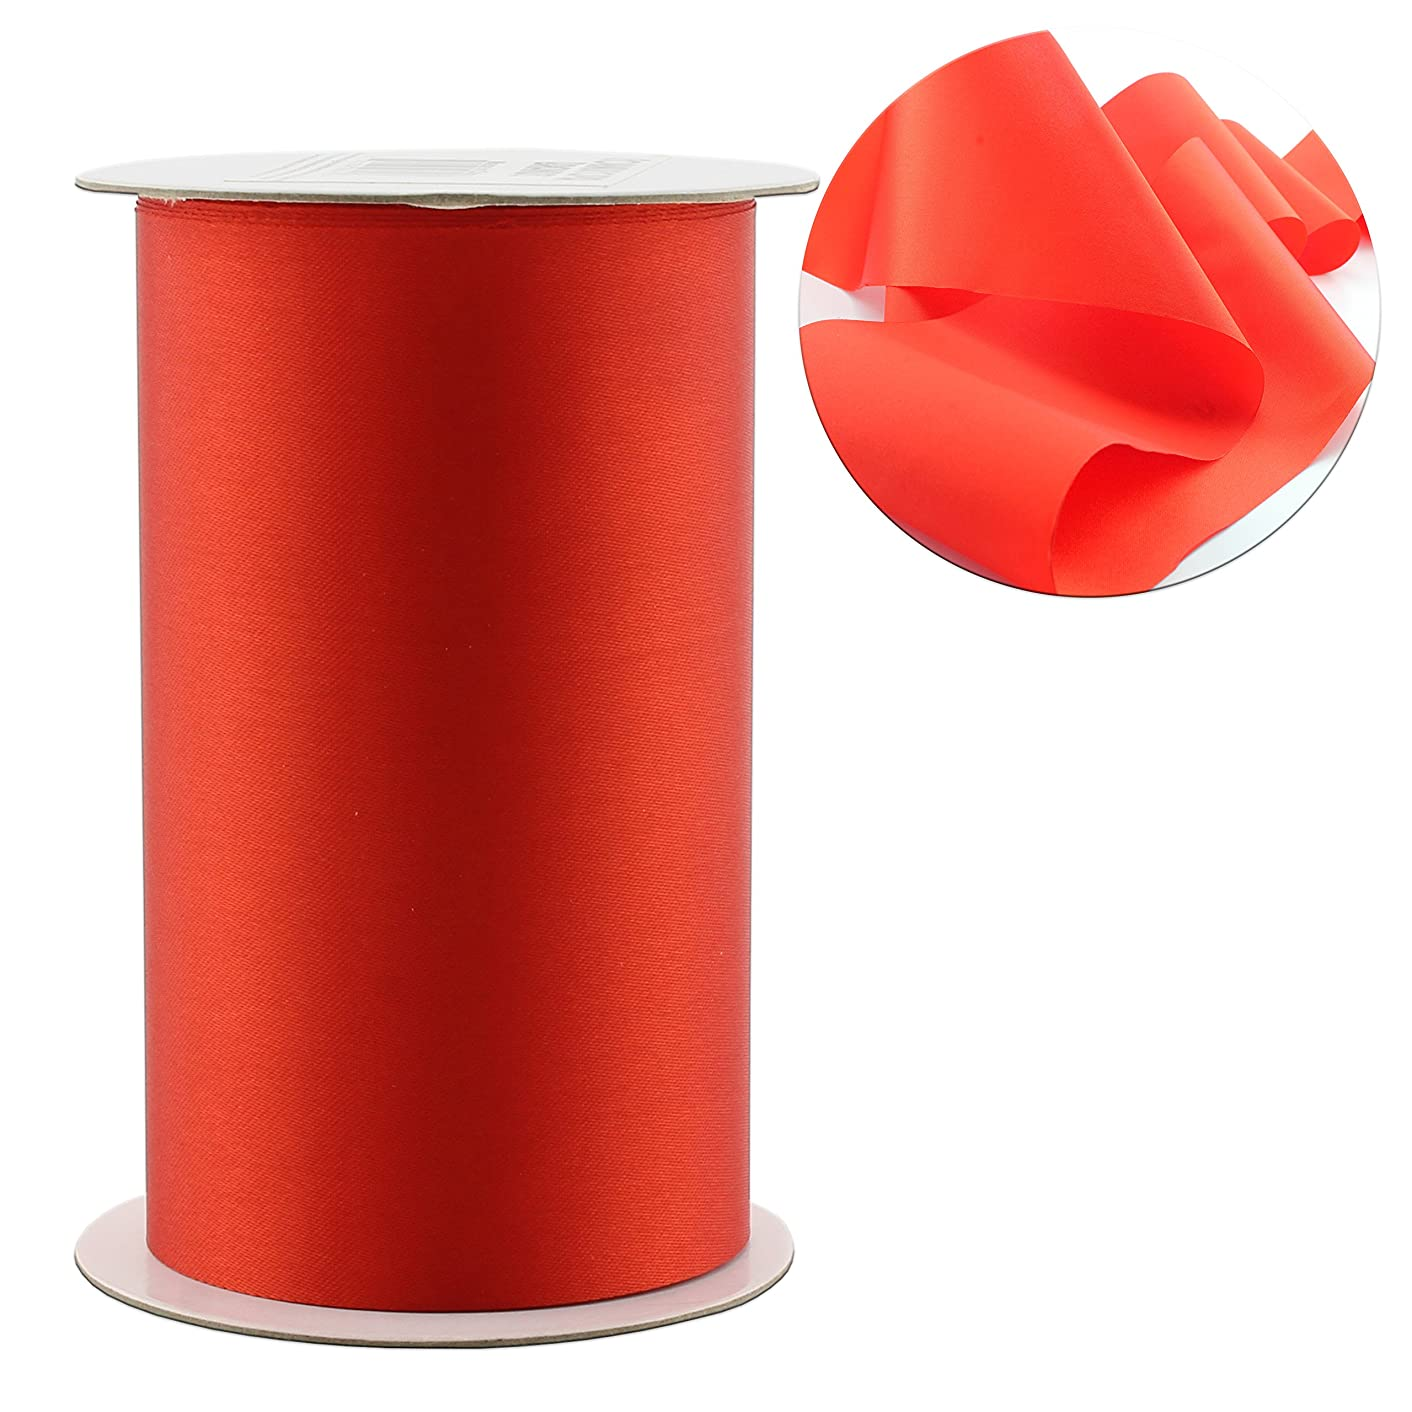 4-Inch Wide Red Satin Ribbon (10 Yards); Solid Color Craft Ribbon for Christmas, Valentines, Grand Opening Ceremonies/Ribbon Cutting, Chair Sashes, Crafts 10-Yard Spool / 30 Feet)